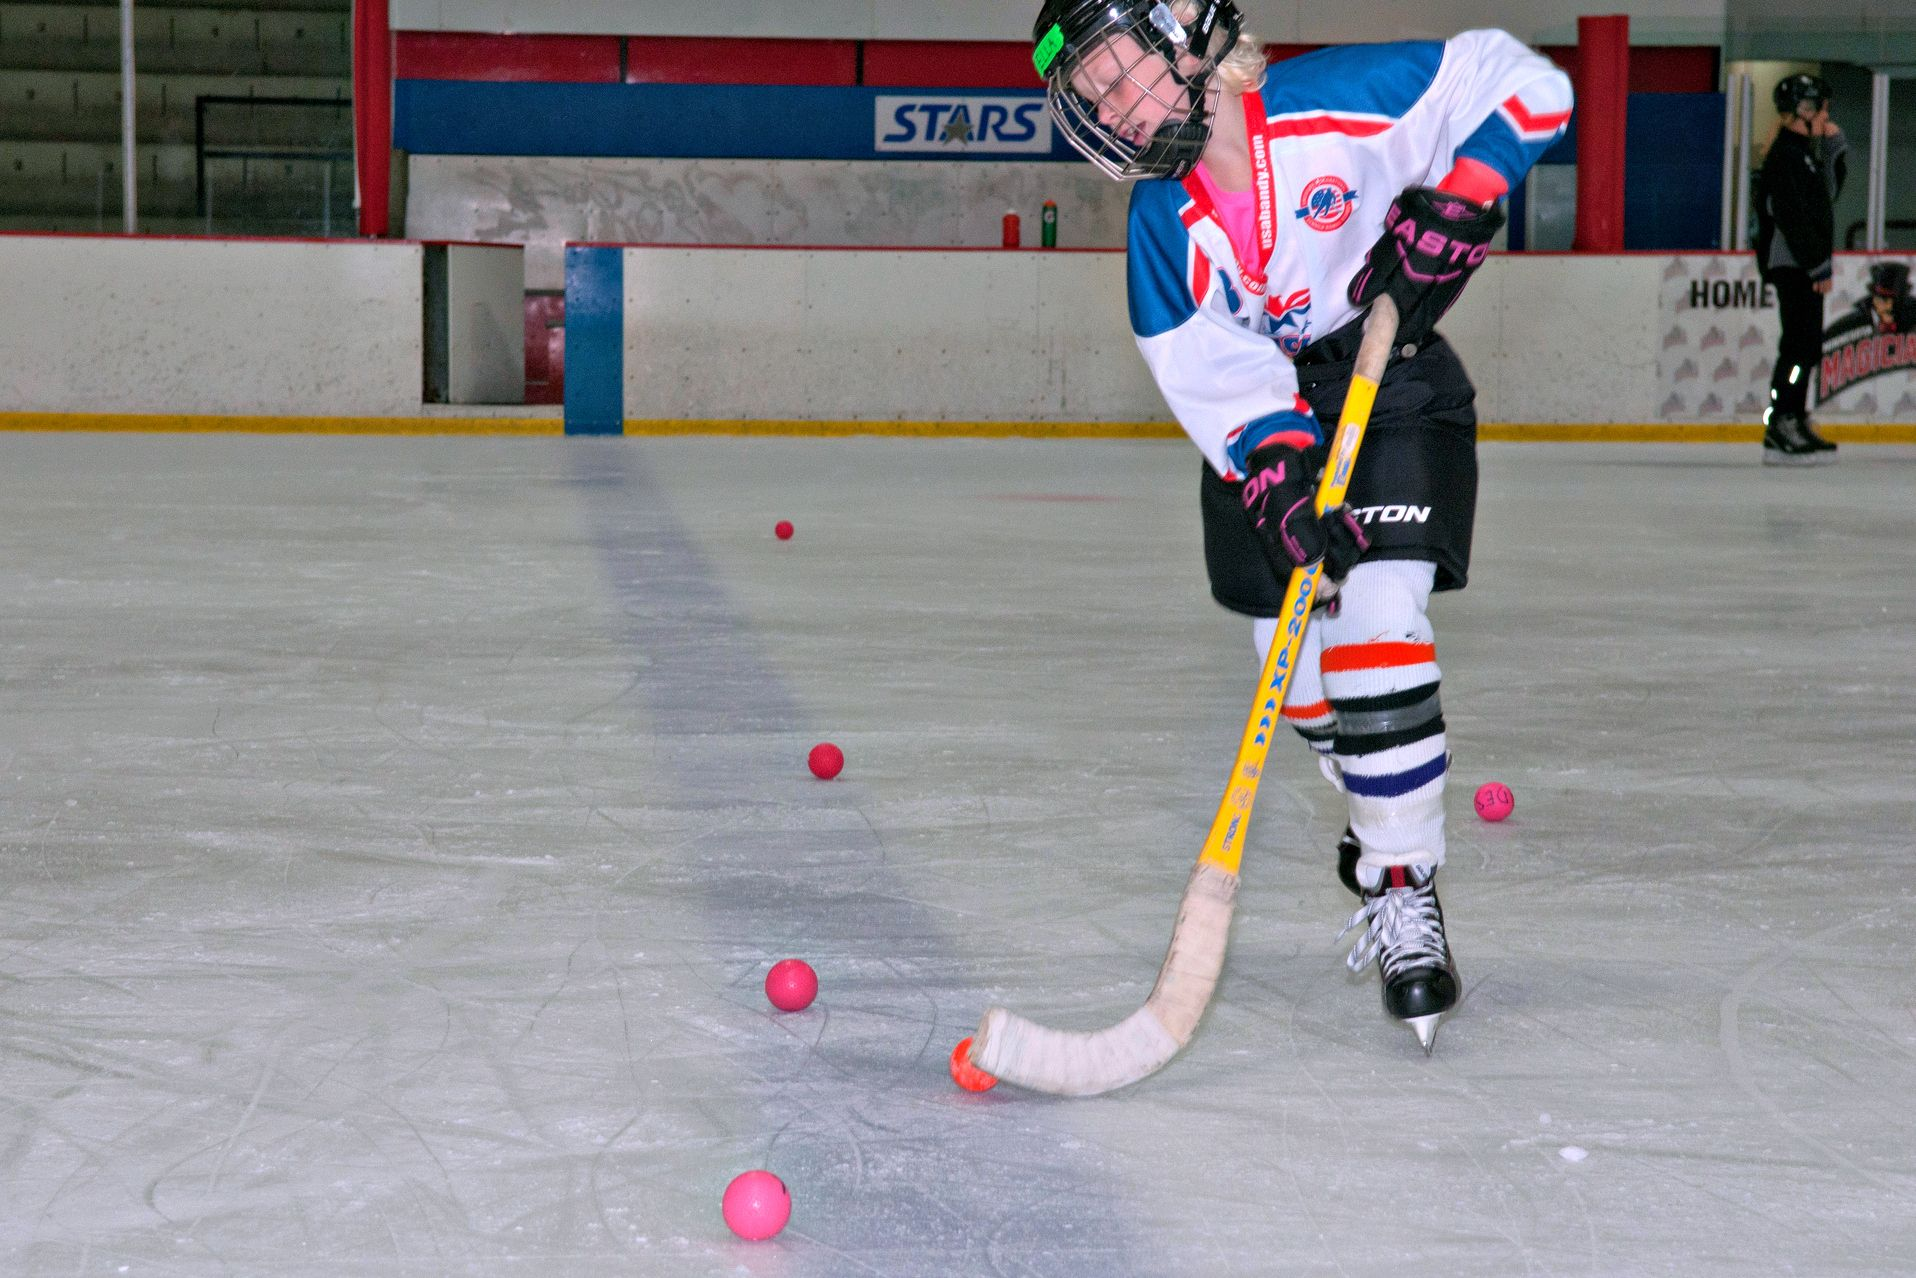 Getting Started With Ice Hockey Classes And Leagues At Rinks Around La And The Valley Los Angeles With Kids Olympic Hockey Kids Things To Do